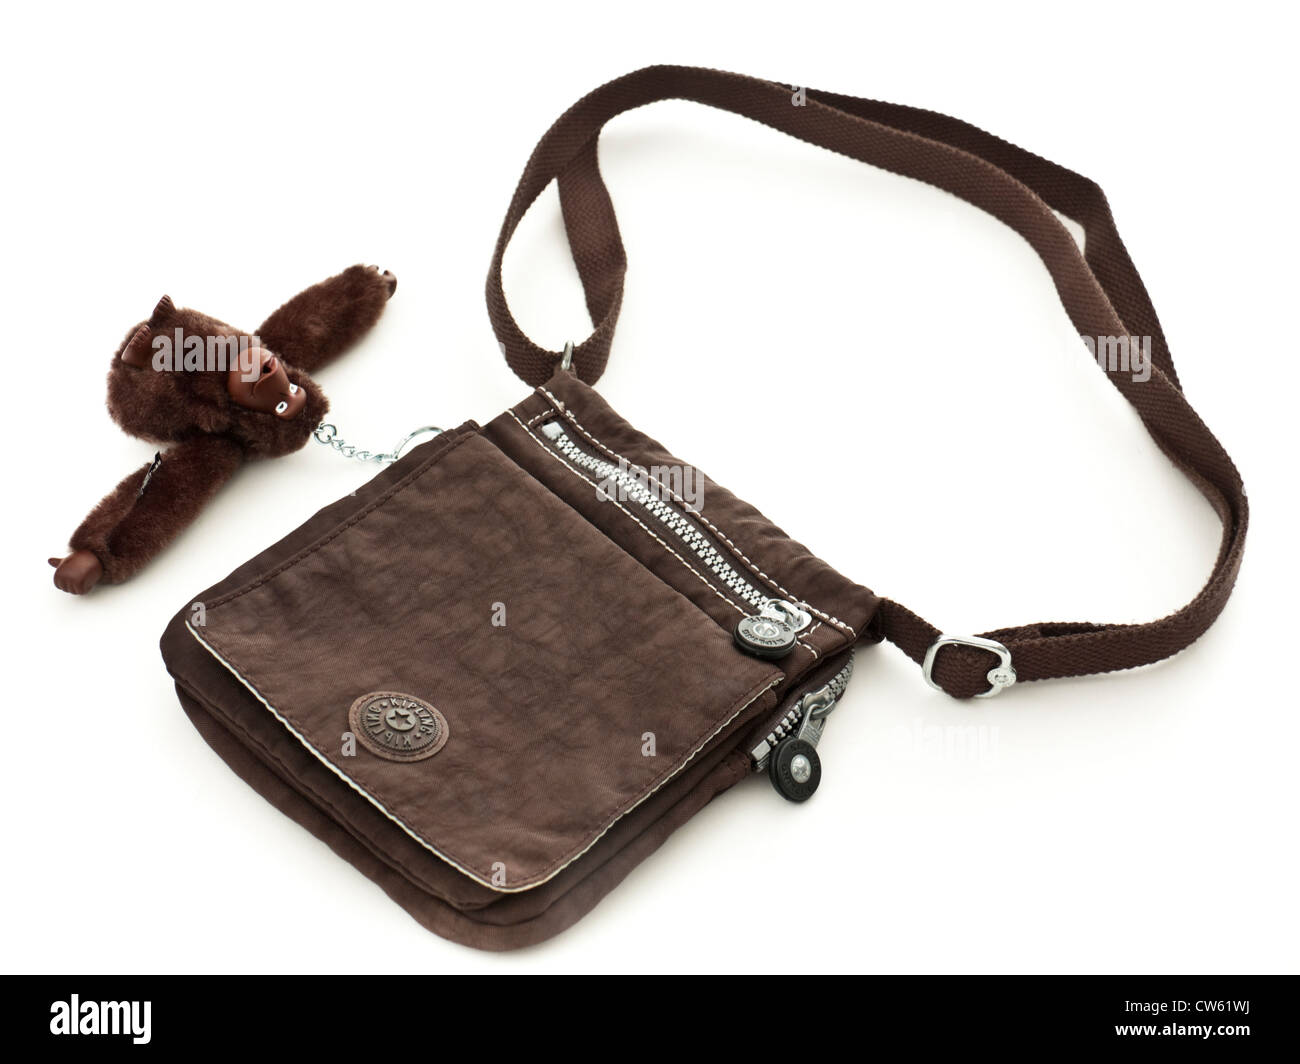 9b68894f82f Designer handbag with monkey key-hanger by Kipling of Belgium Stock ...